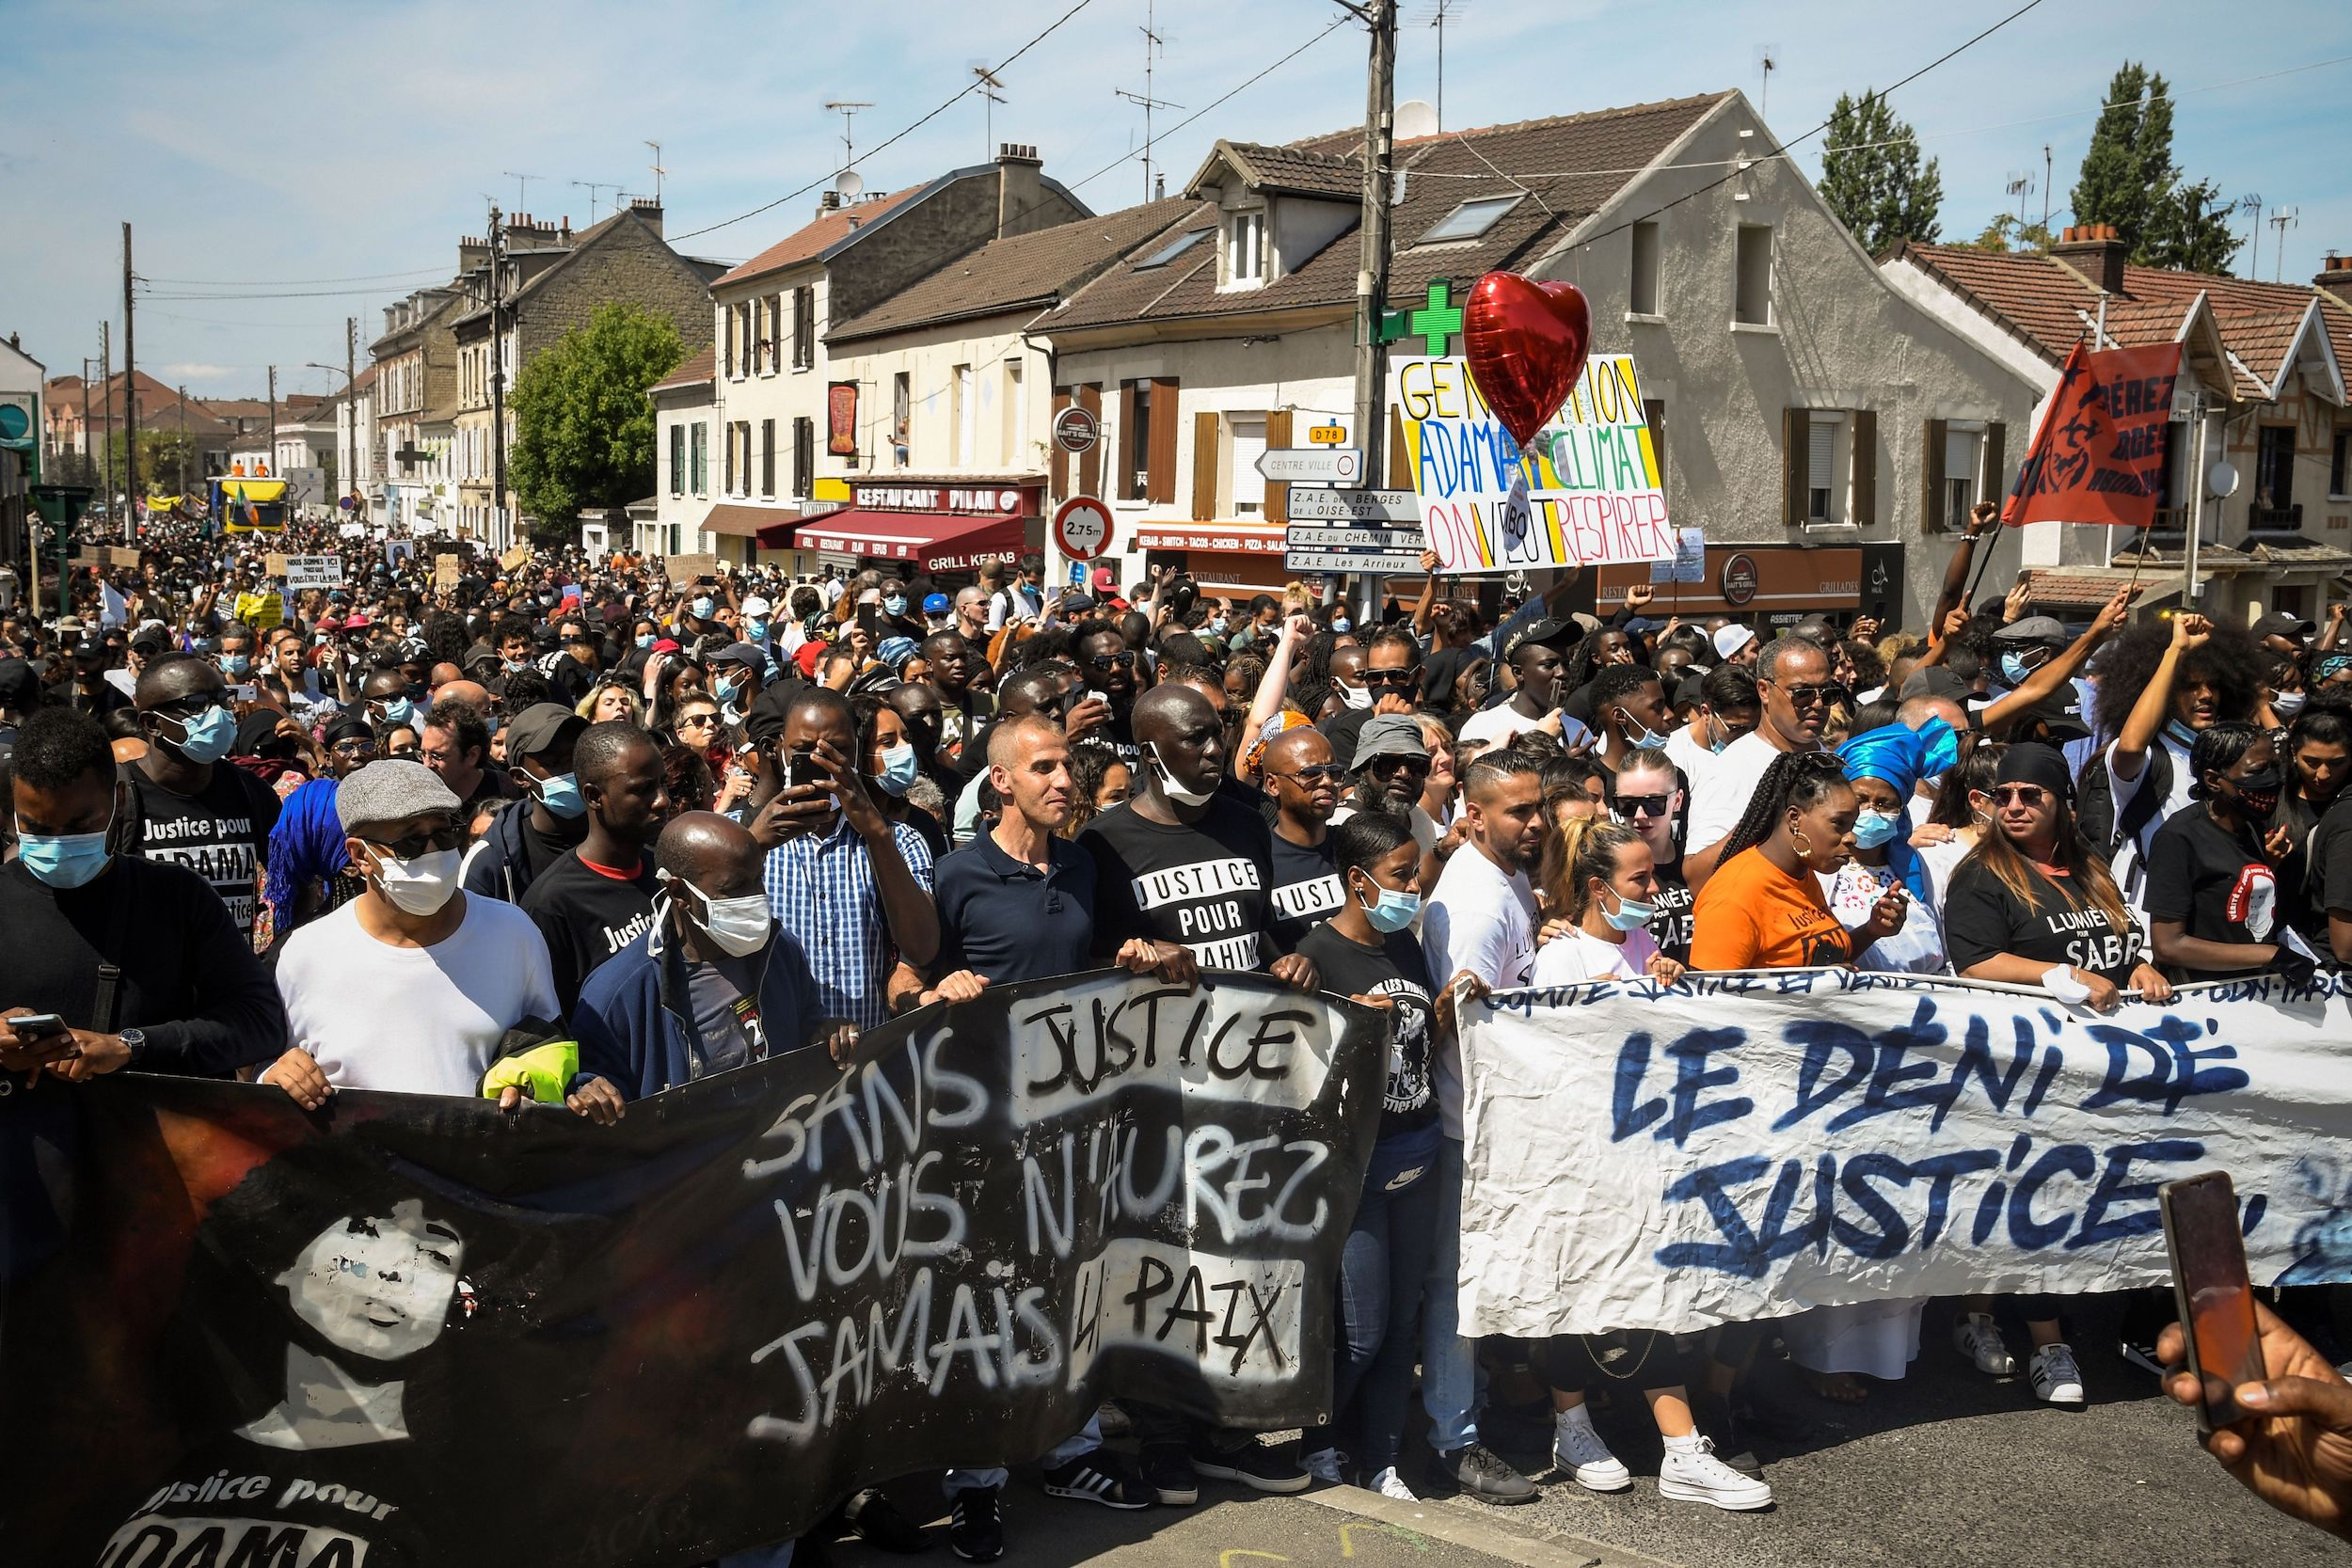 People take part in a march called by several civil rights and ecologist associations to commemorate Adama Traore, a black man who died in police custody four years ago, and to protest against police violence on July 18, 2020 in the Parisian suburban city of Beaumont-sur-Oise.